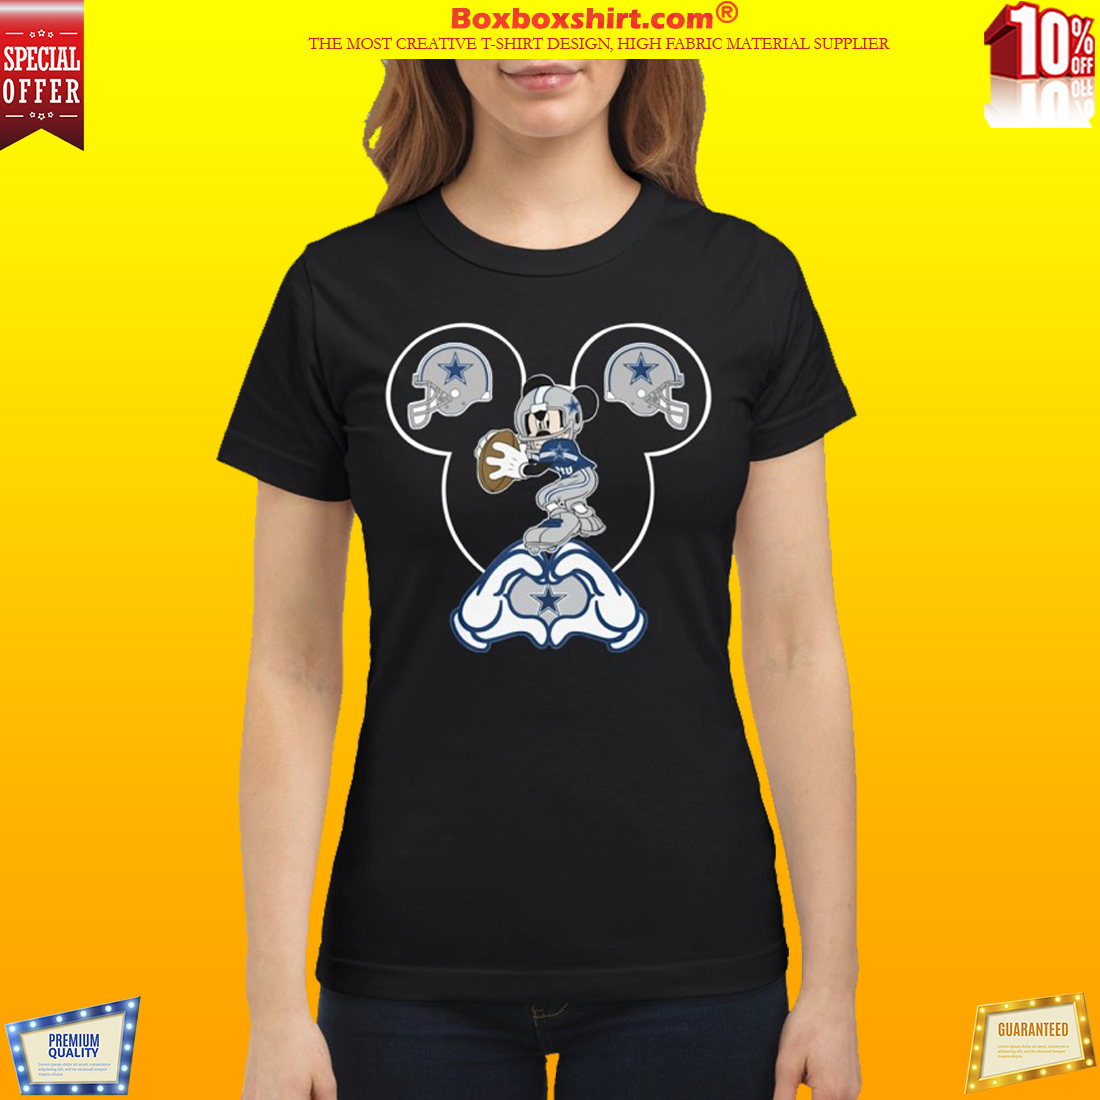 Mickey Mouse Dallas Cowboys classic shirt